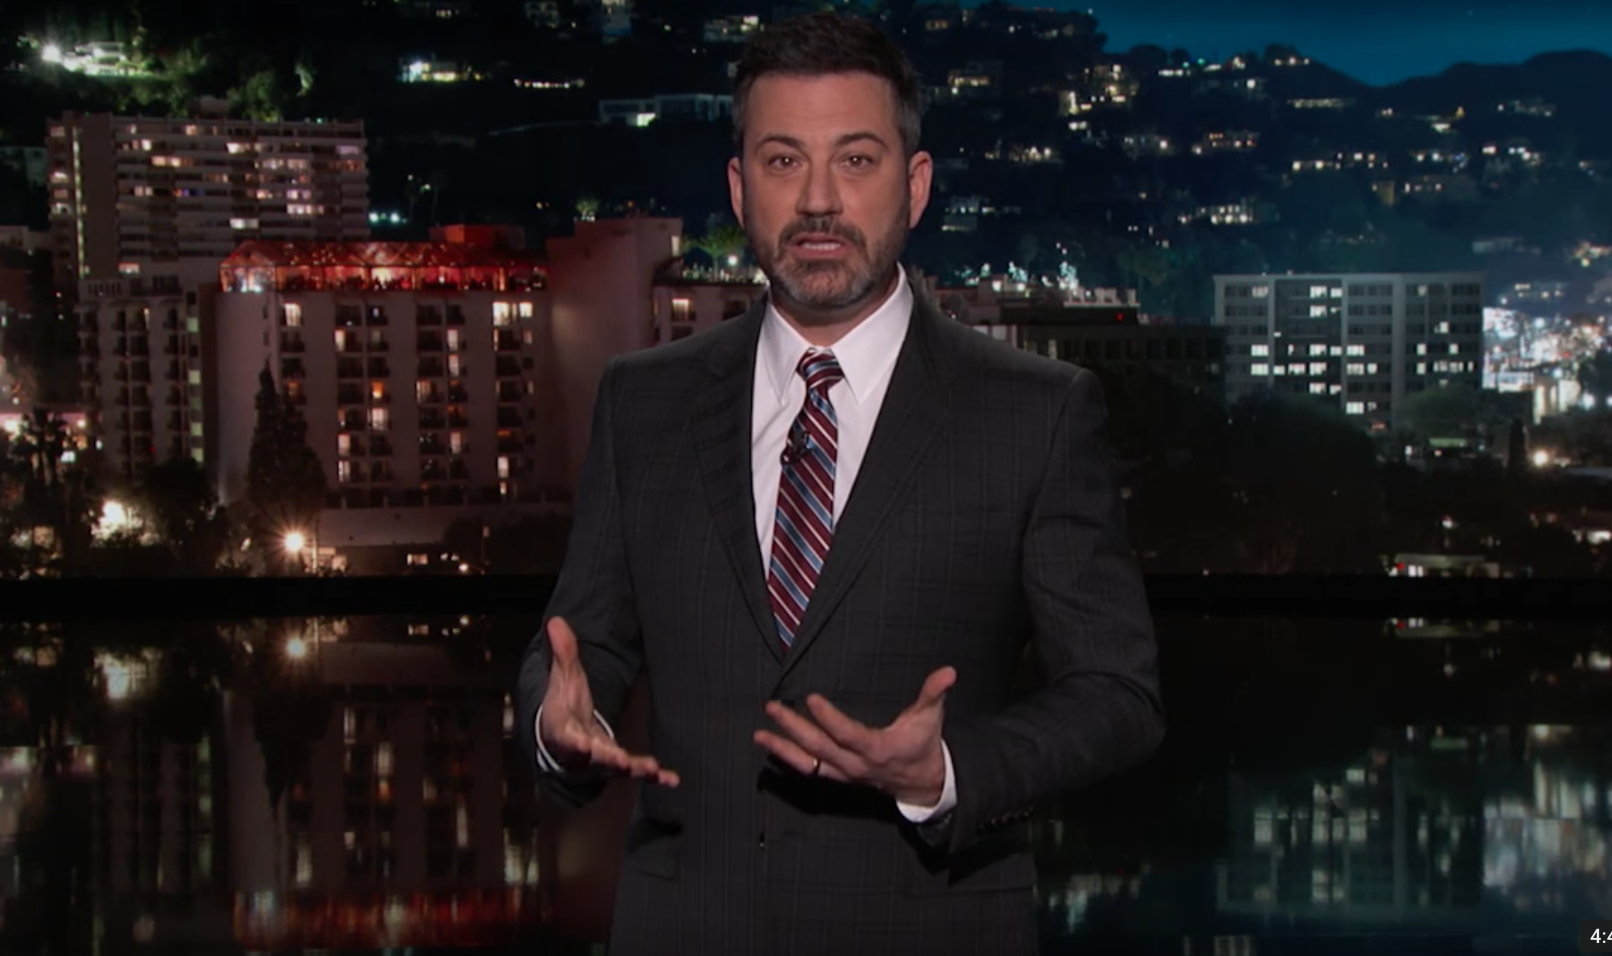 Jimmy Kimmel calls out Trump during emotional Florida shooting monologue